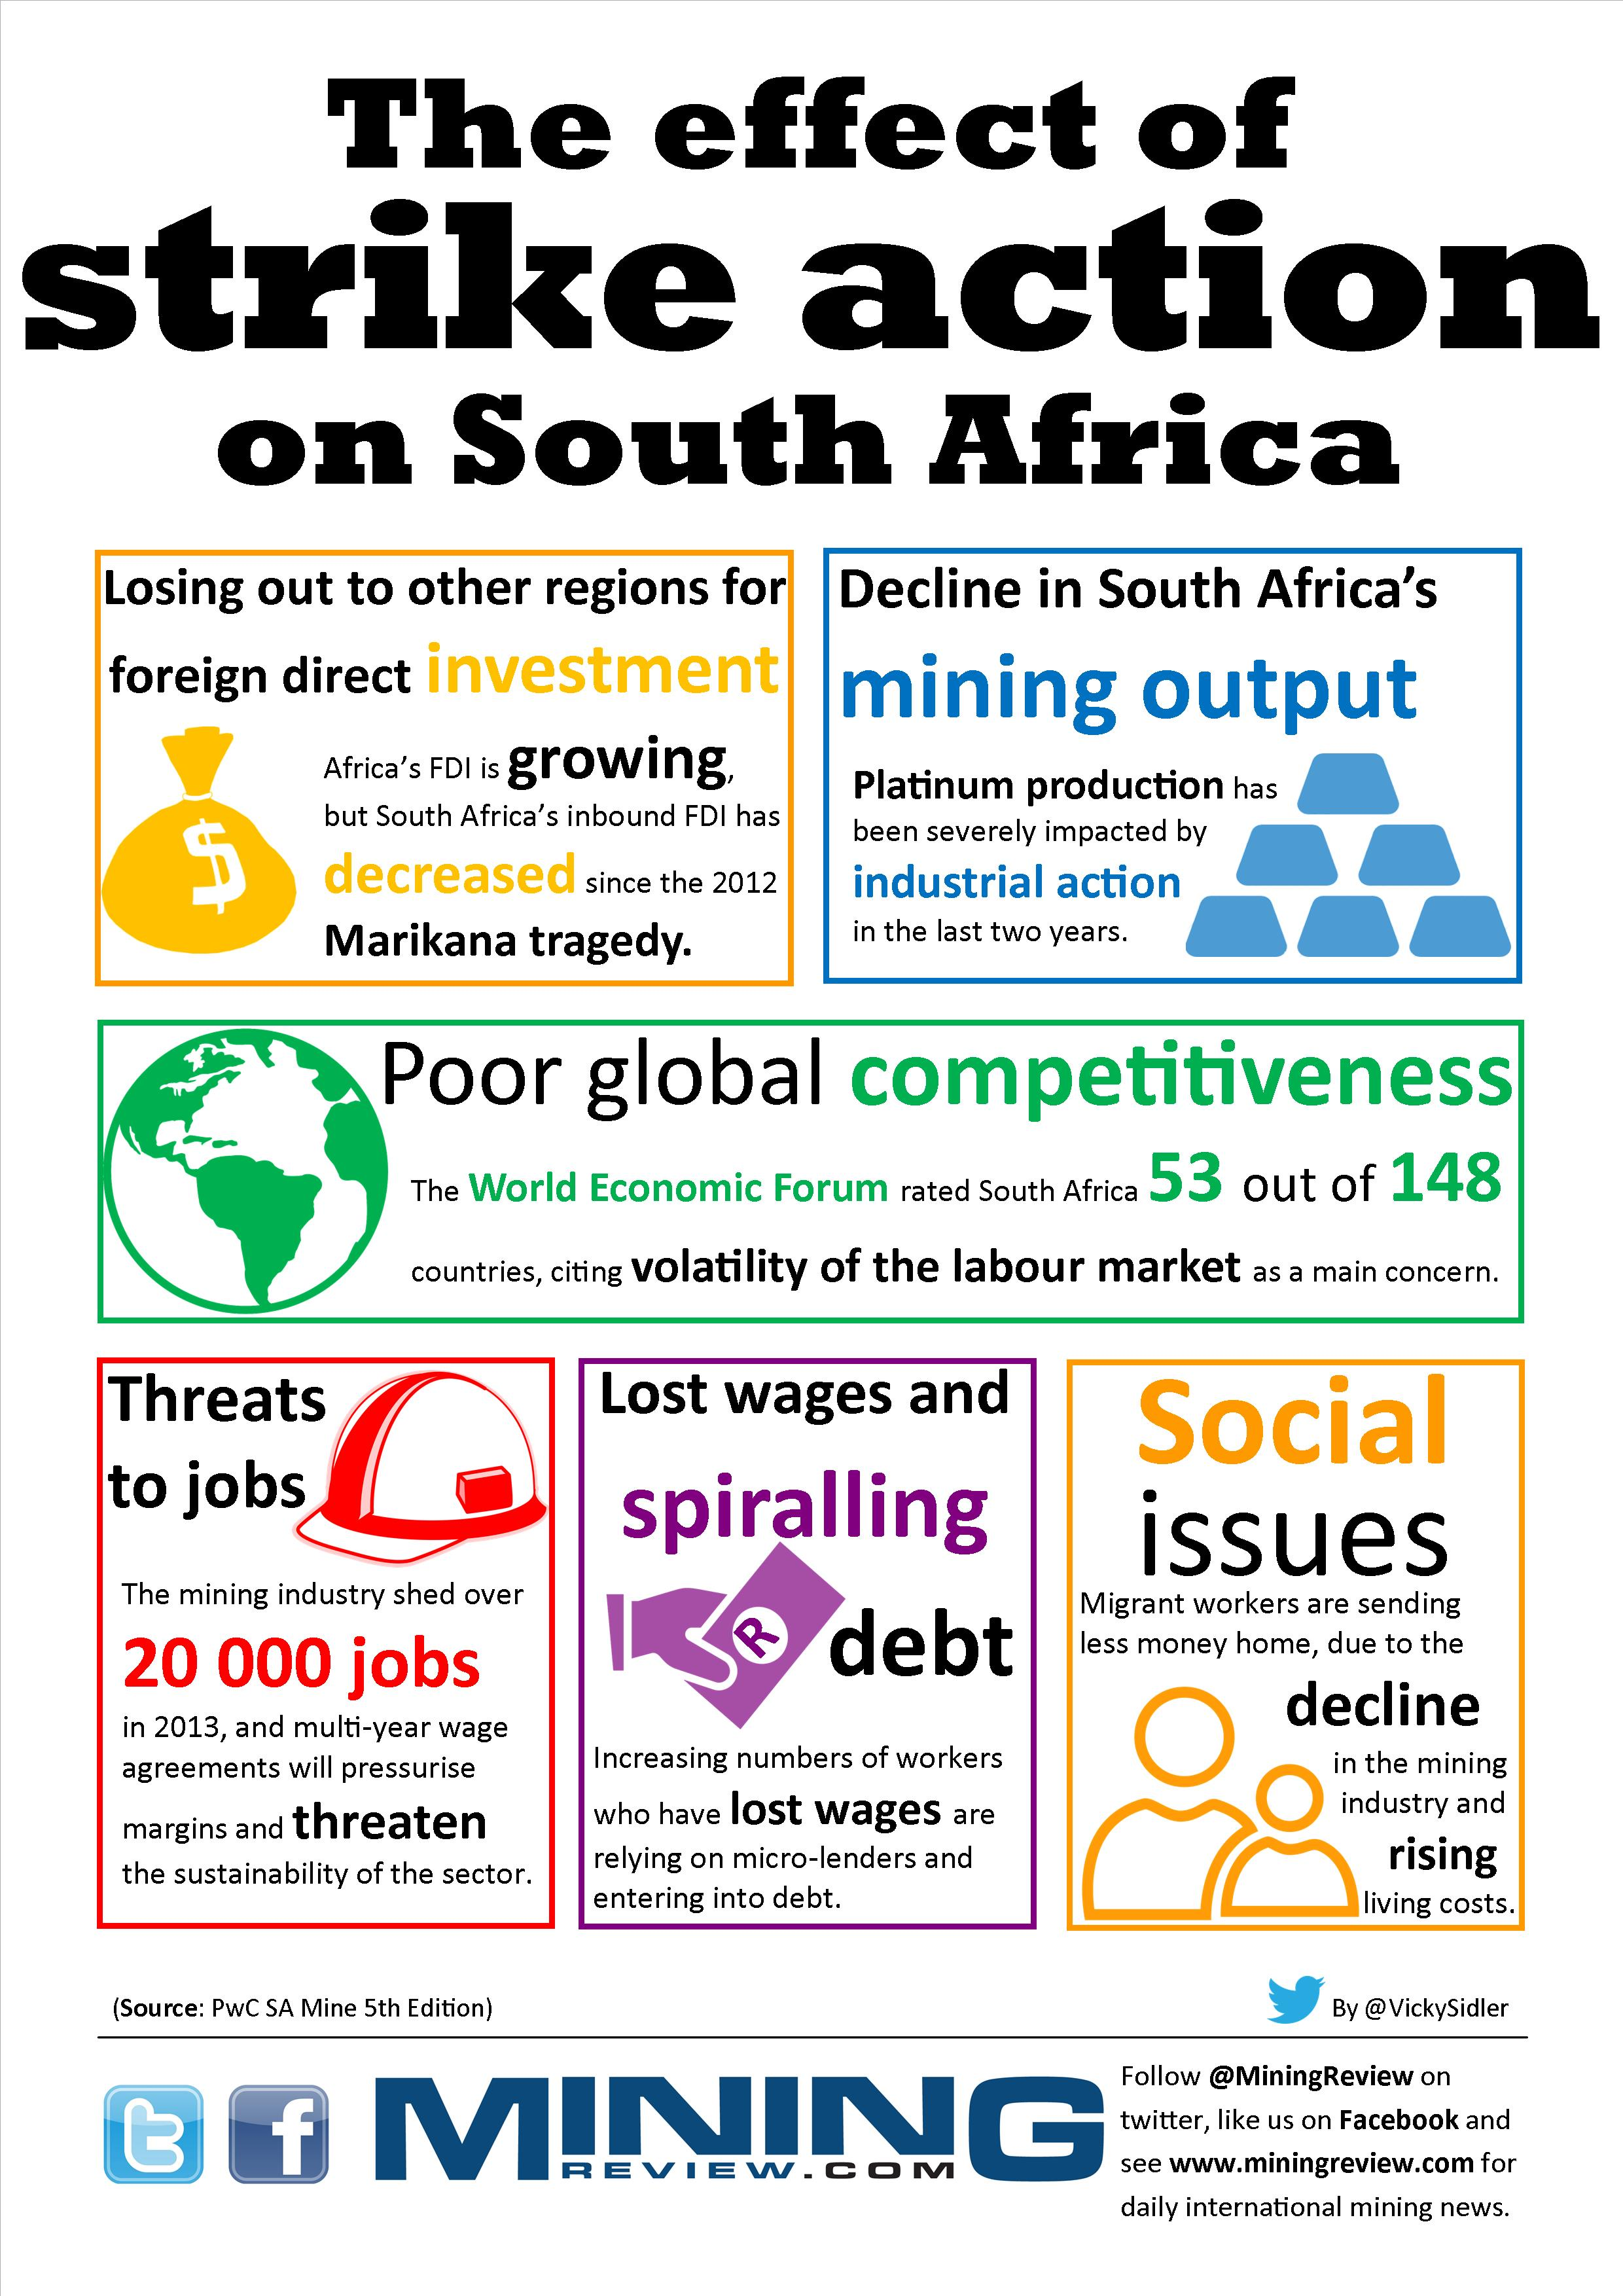 Strike effects on South Africa Infographic